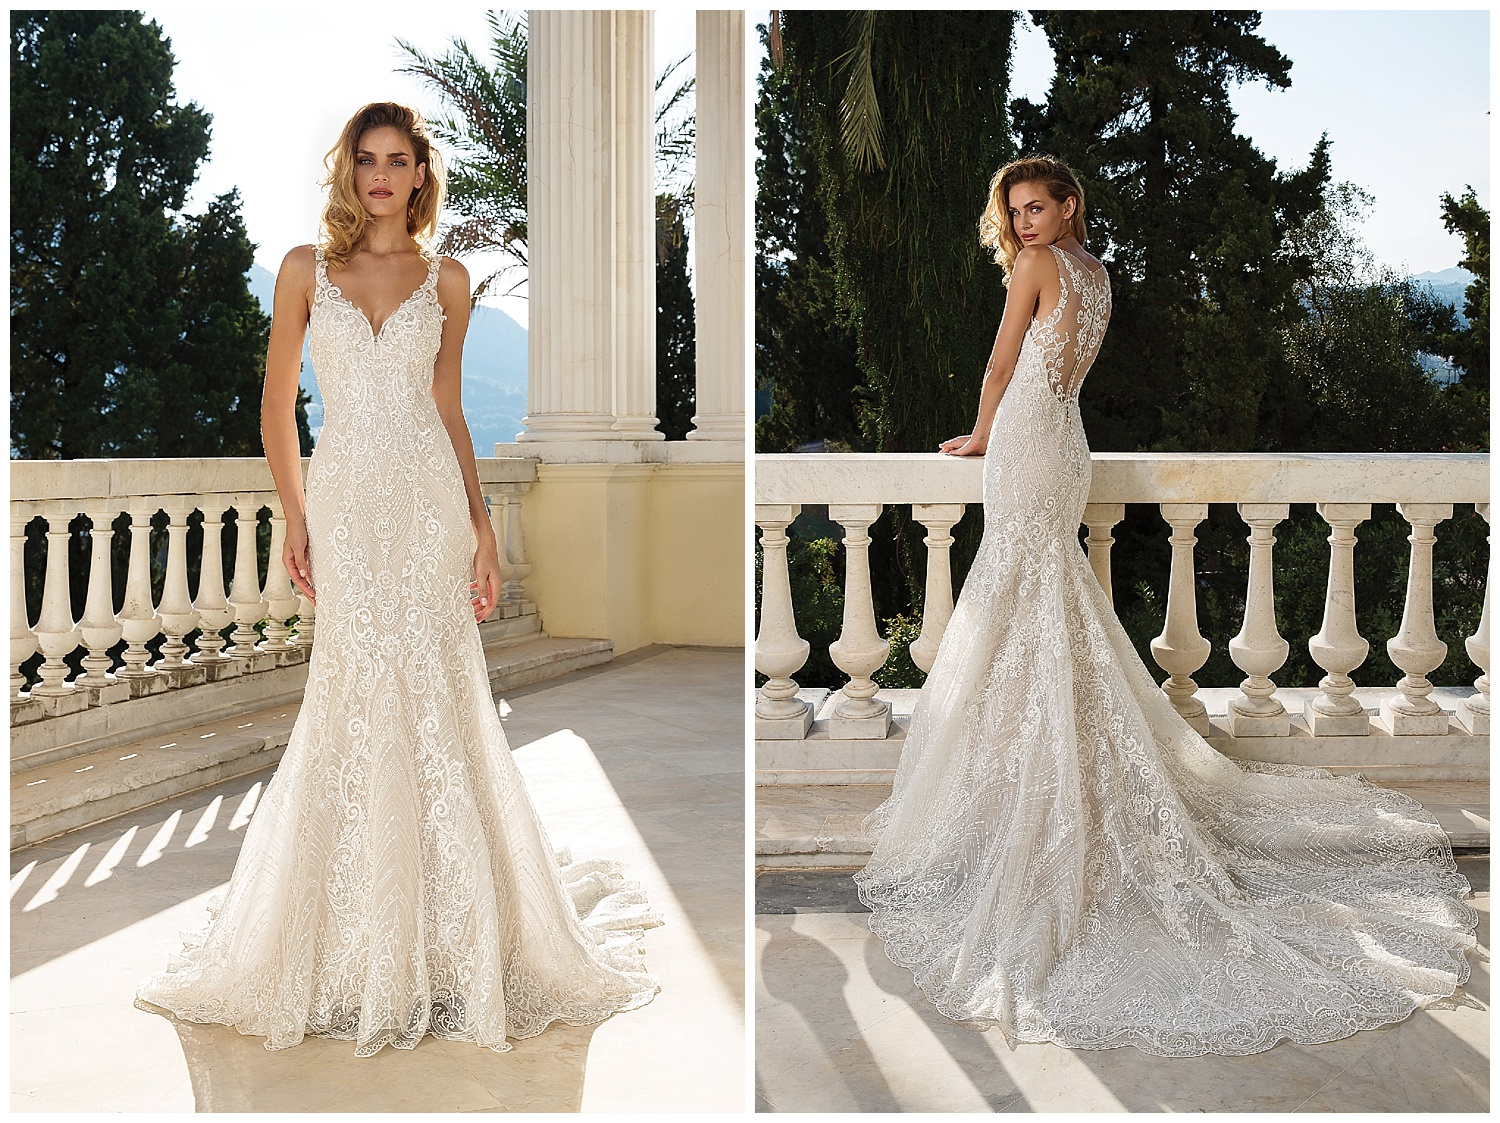 justin-alexander-88088-fit-and-flare-lace-gown-epiphany-boutique-carmel-california.jpg